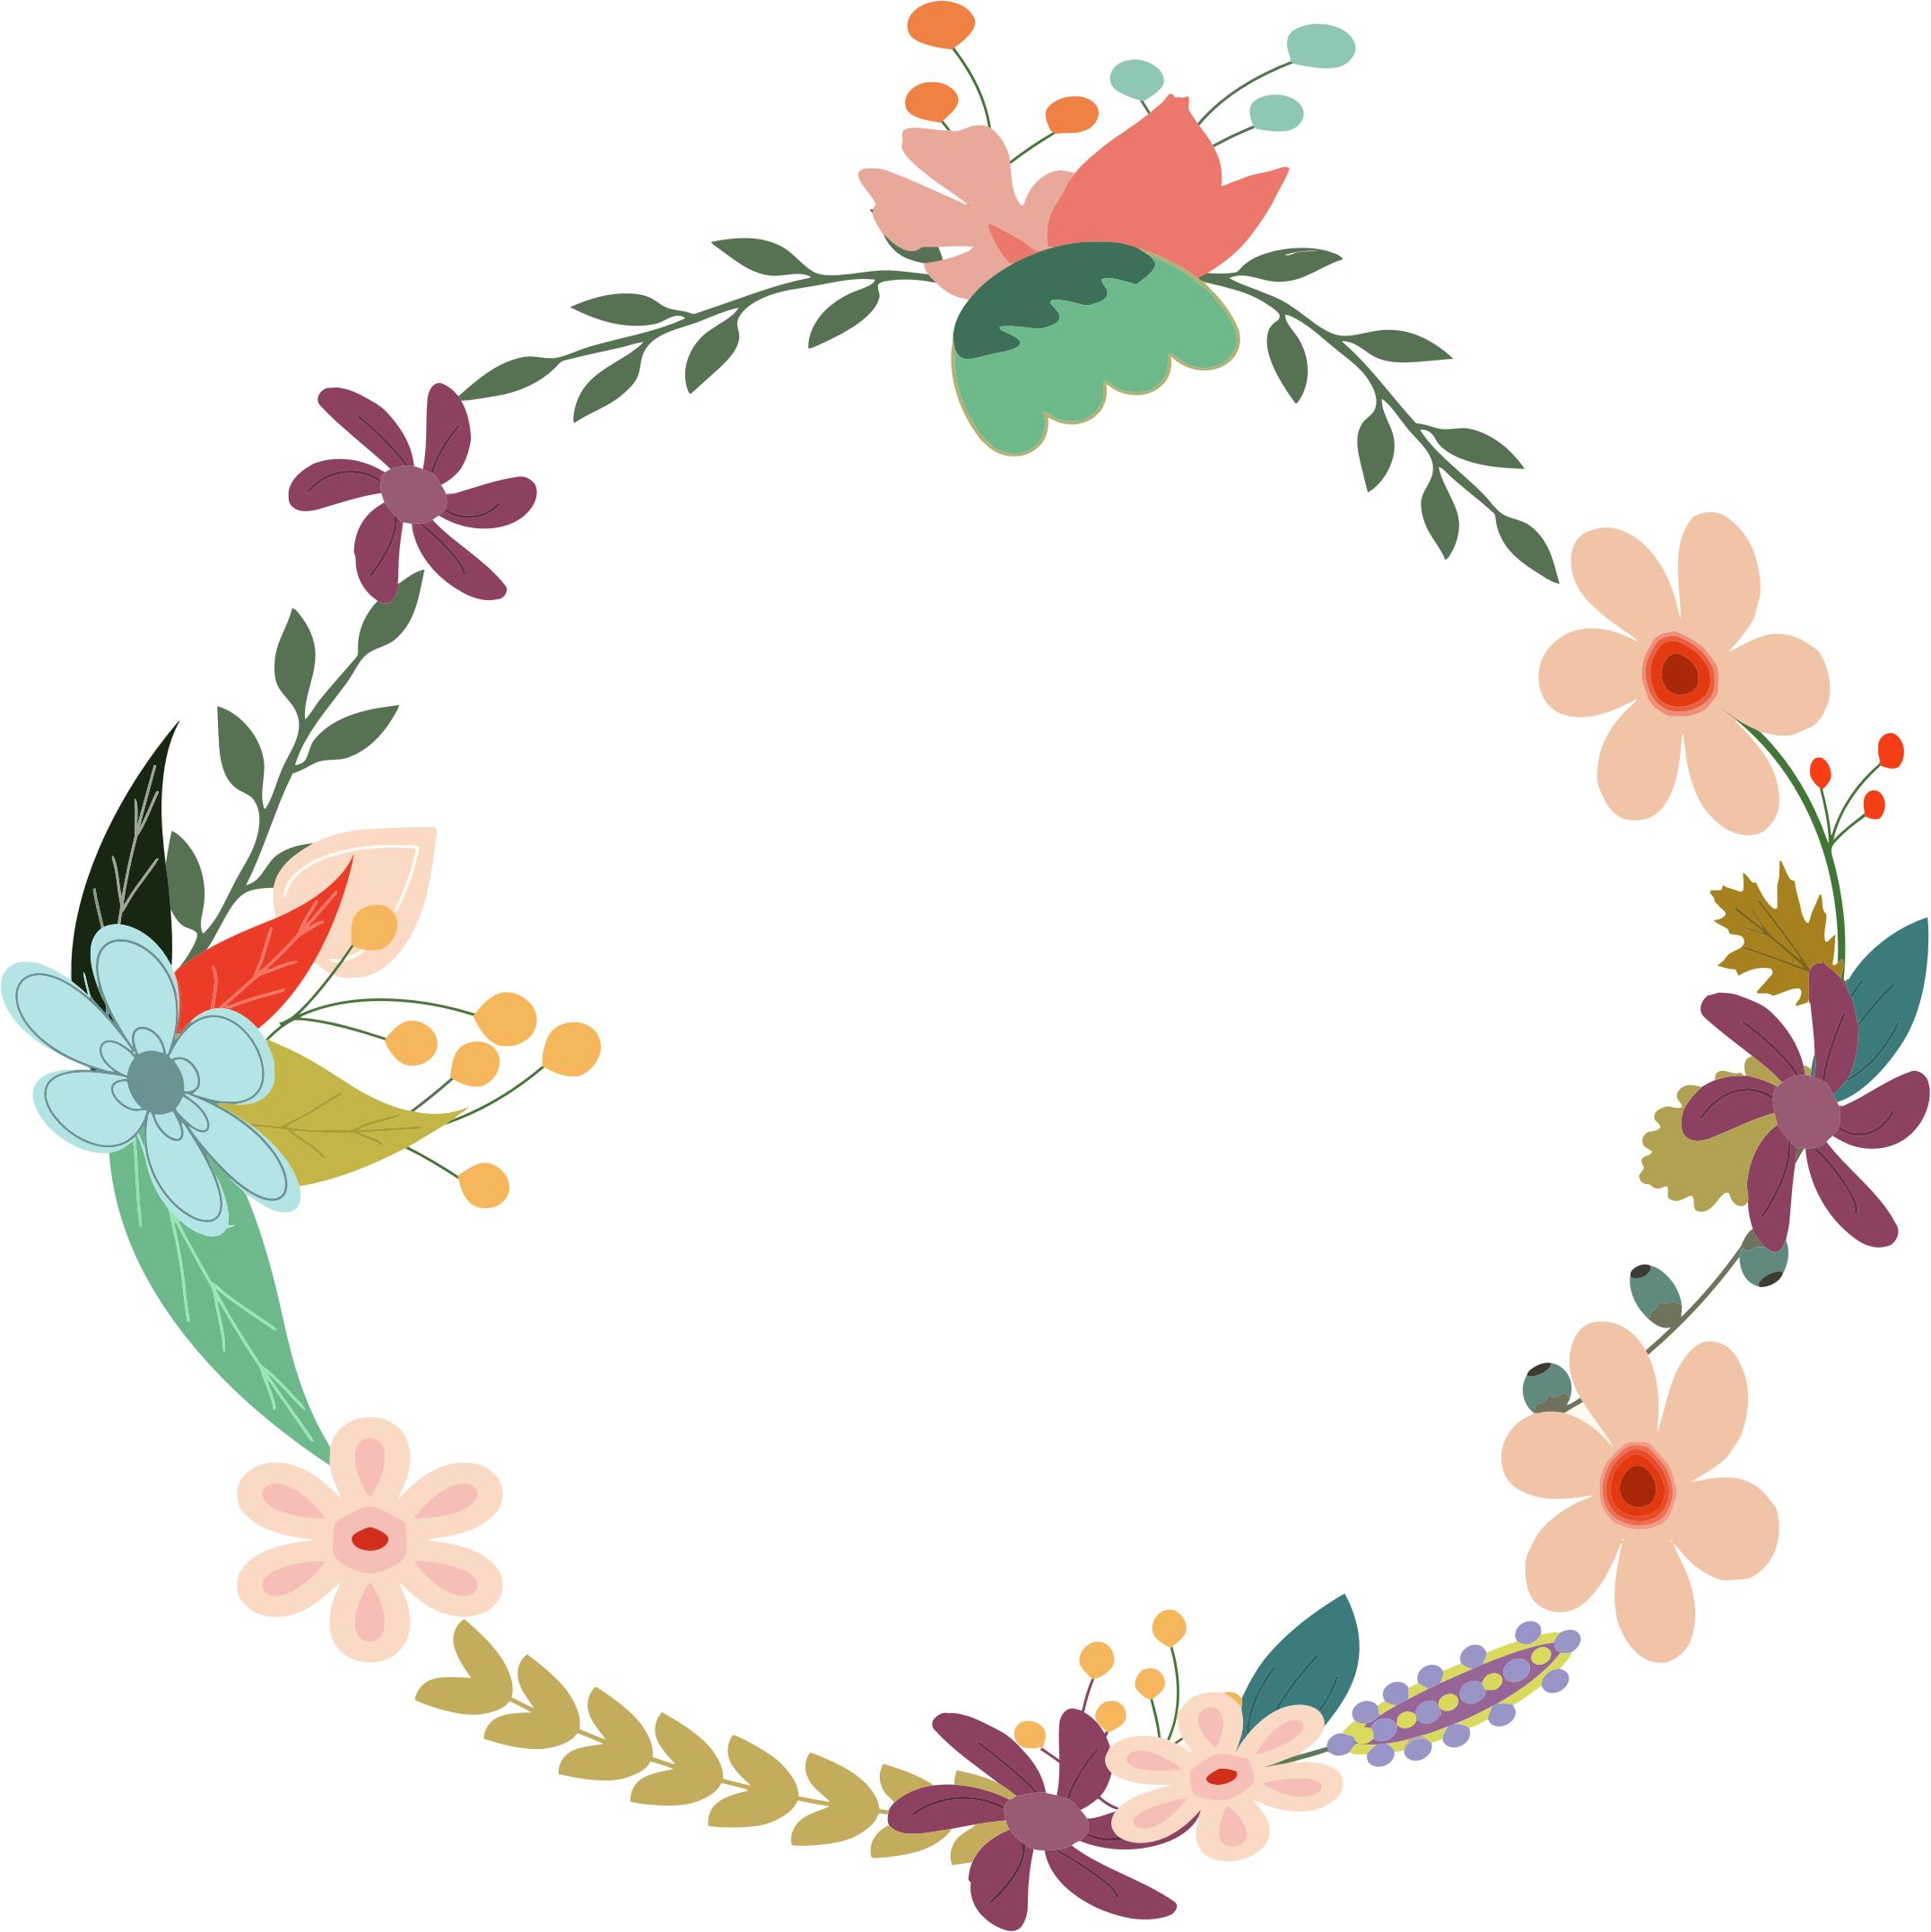 Floral wreath clipart 20 free Cliparts | Download images ...